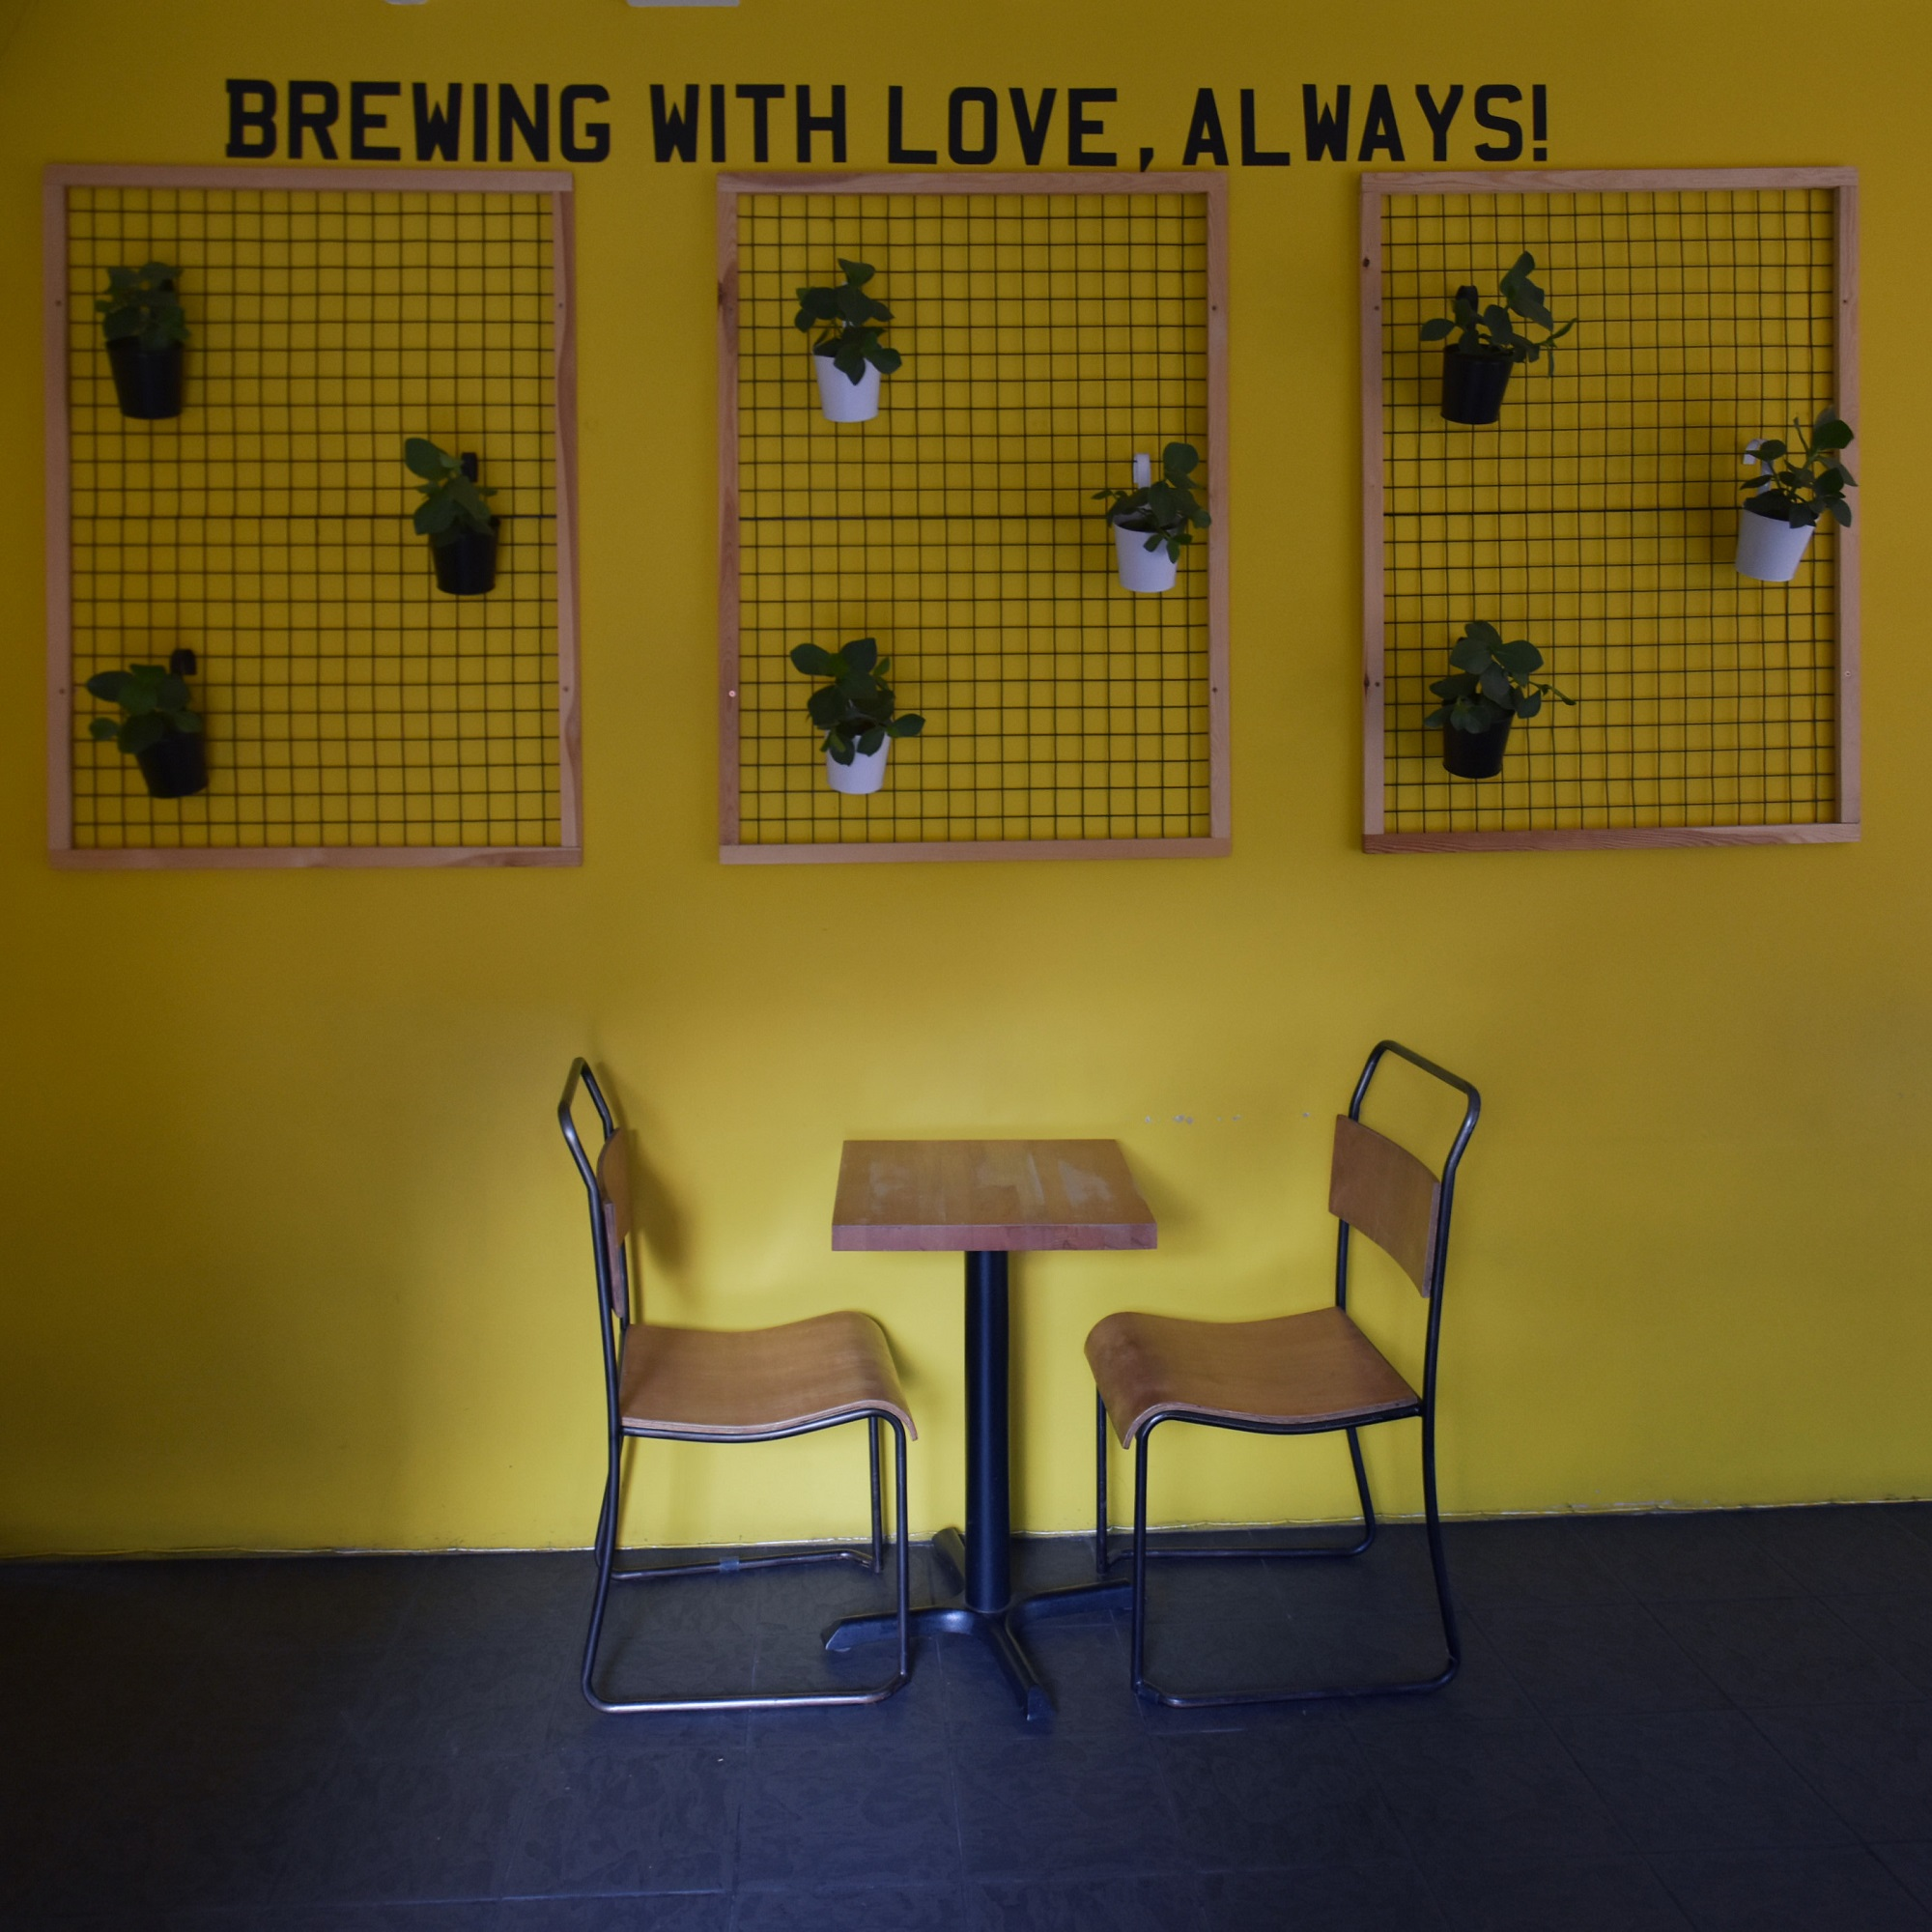 Brewing with love, always! The message written on the wall above a set of plants and a solitary two-person table at Coffee Under Pressure in St Mary's Butt, Reading.